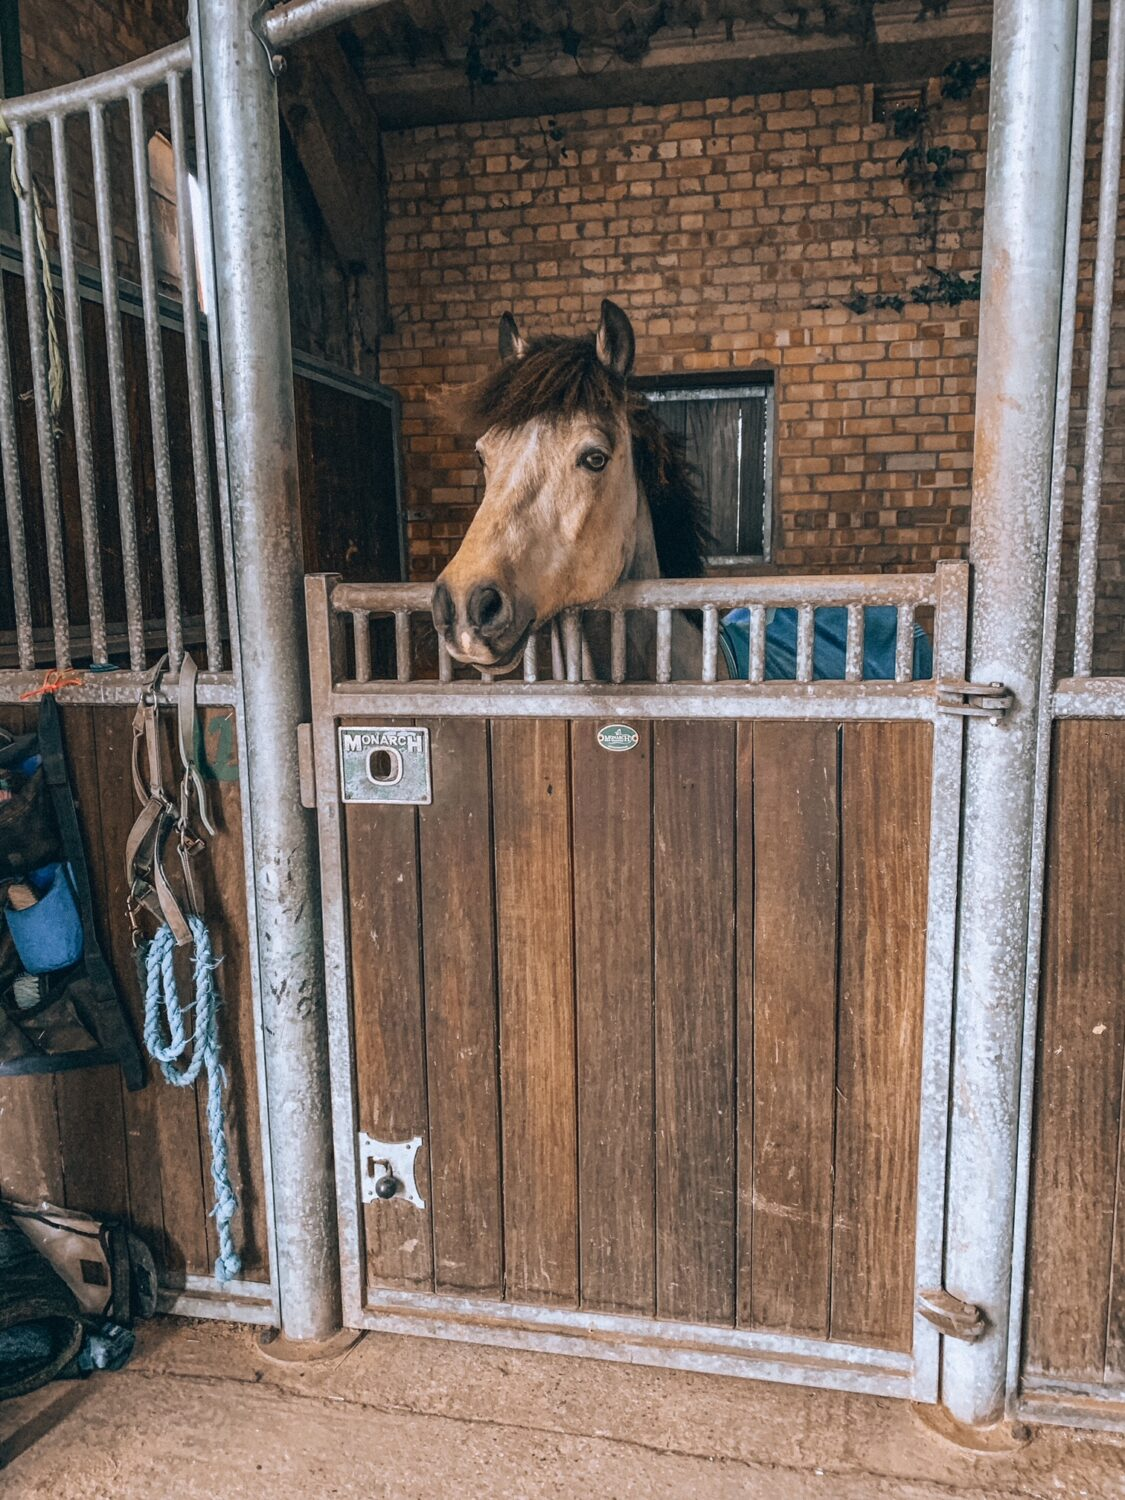 Dun pony looking over stable door